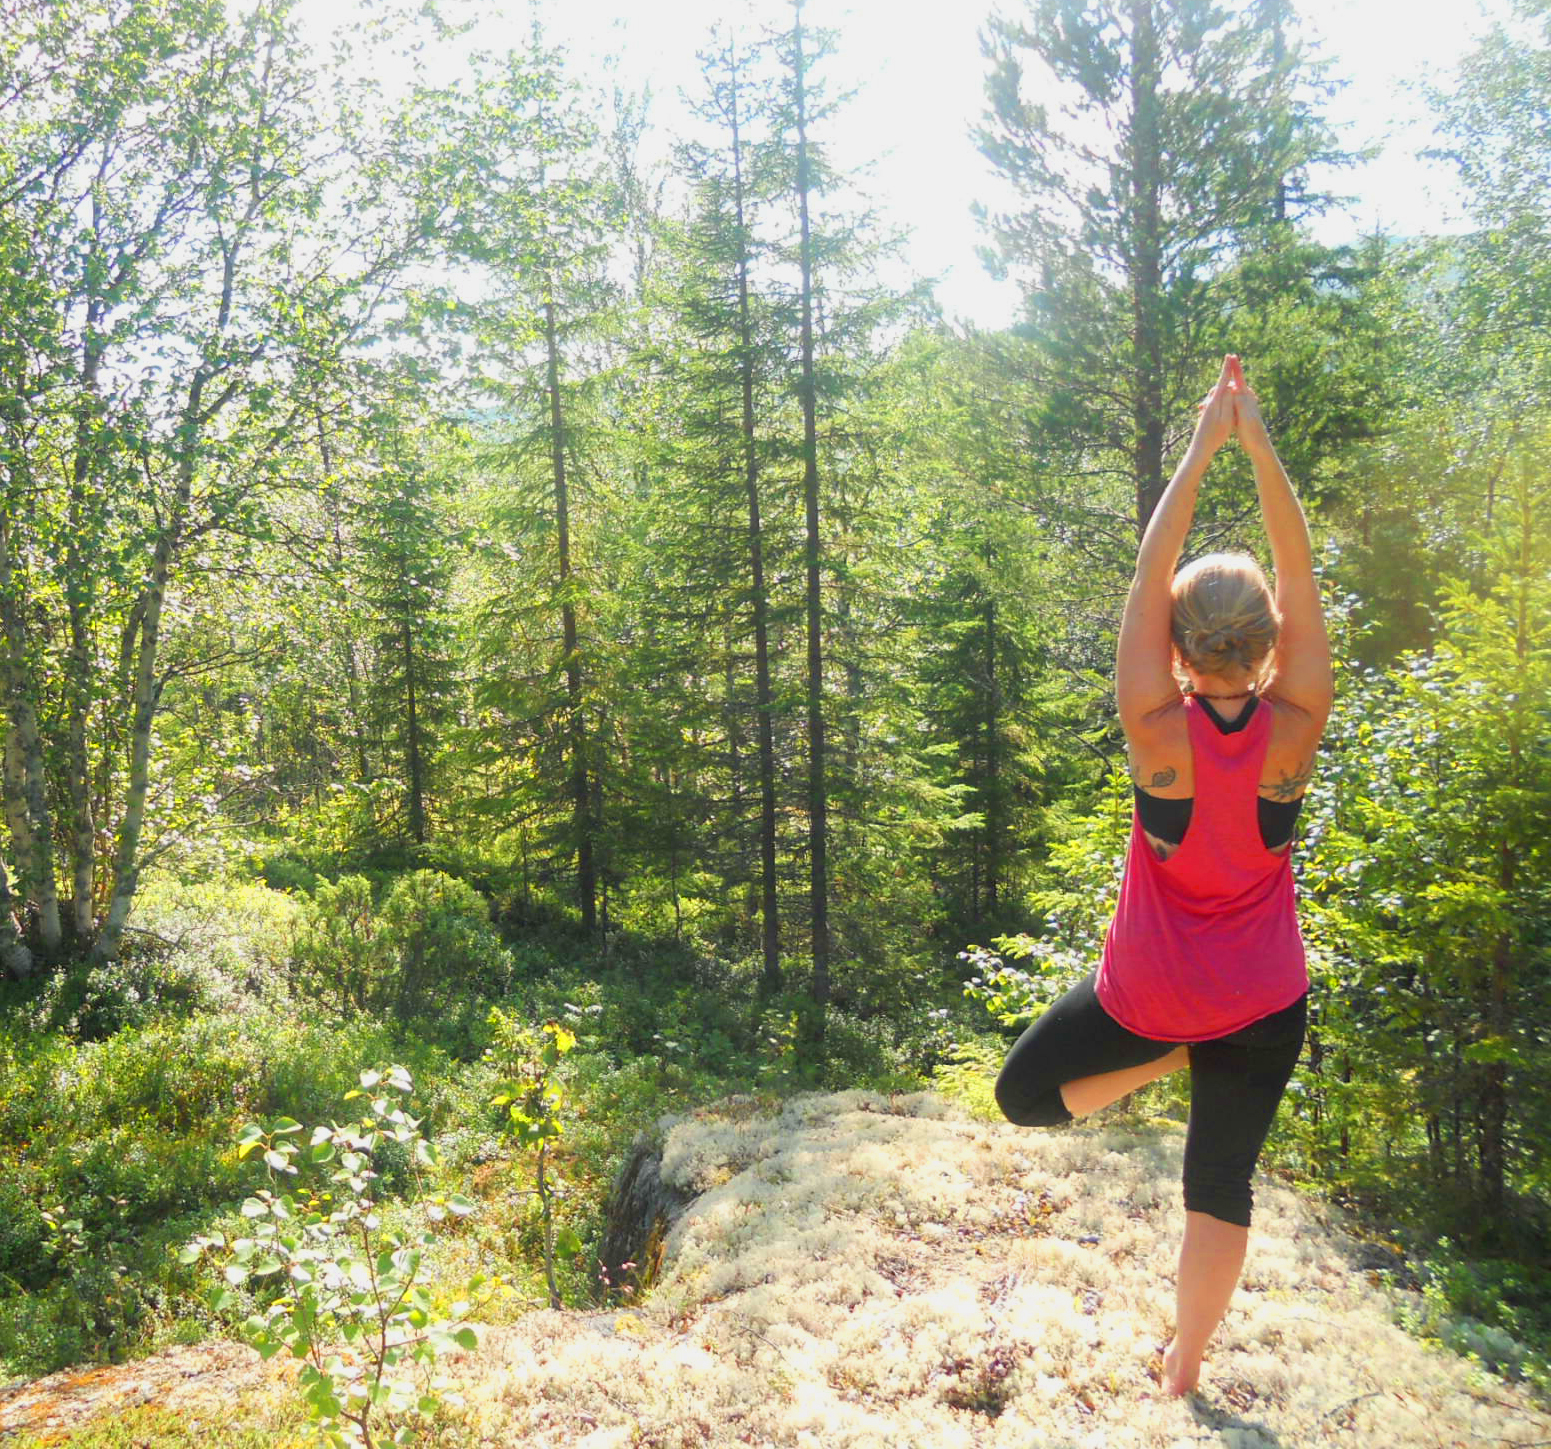 10 Reasons why you should go on a Yoga Retreat